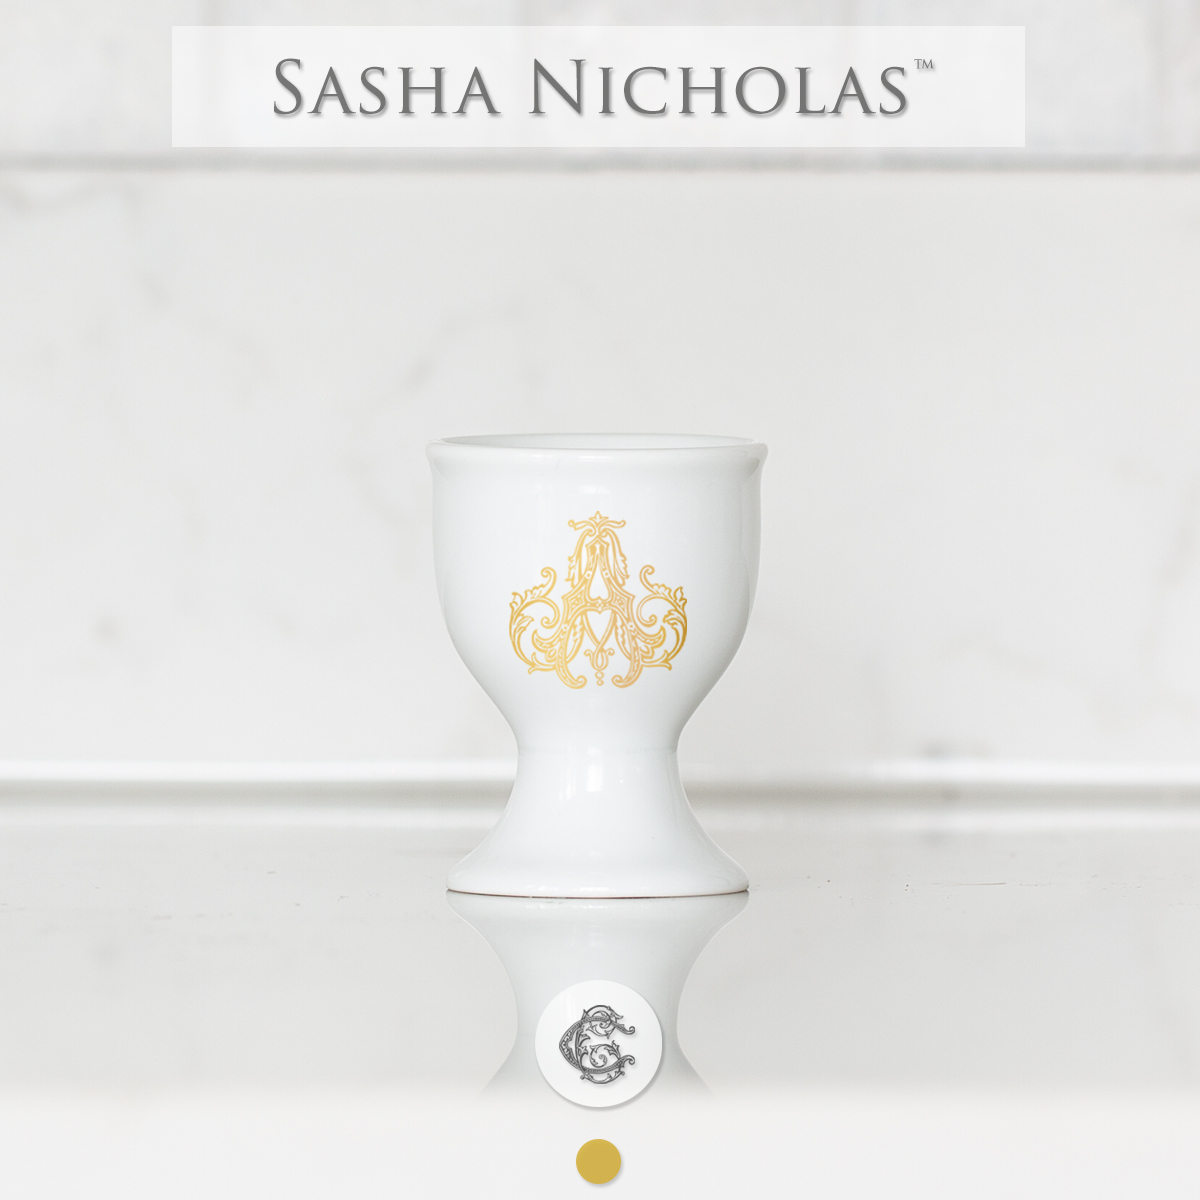 Sasha Nicholas Egg Cup - Limited Edition